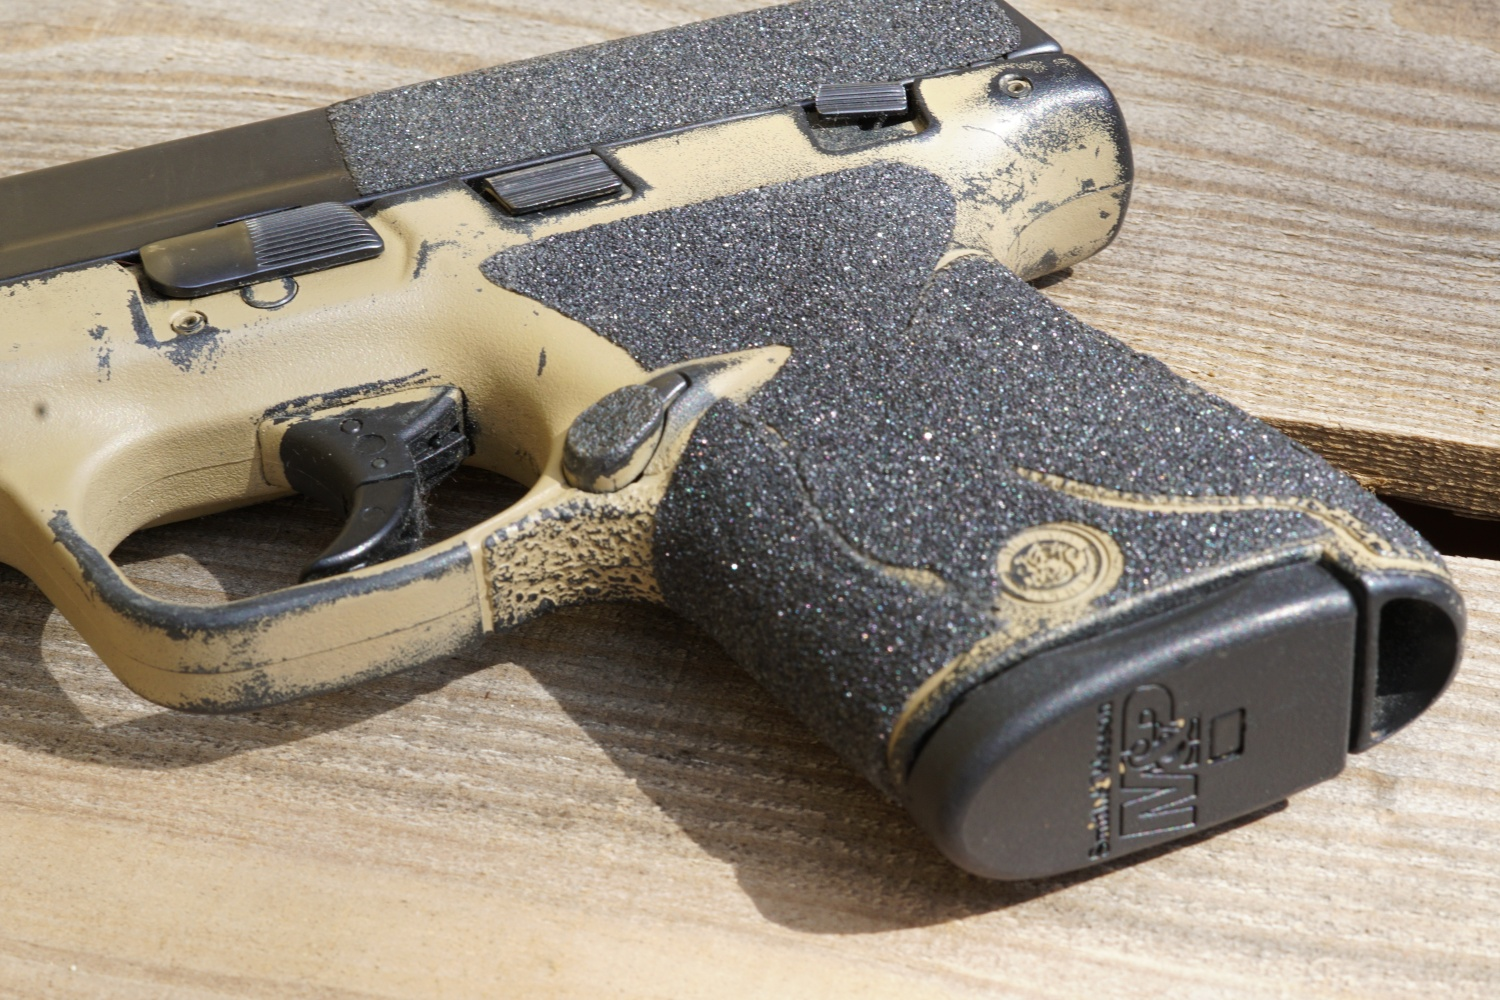 Tfb Review Talon Adhesive Grips For M Amp P Glock And Many